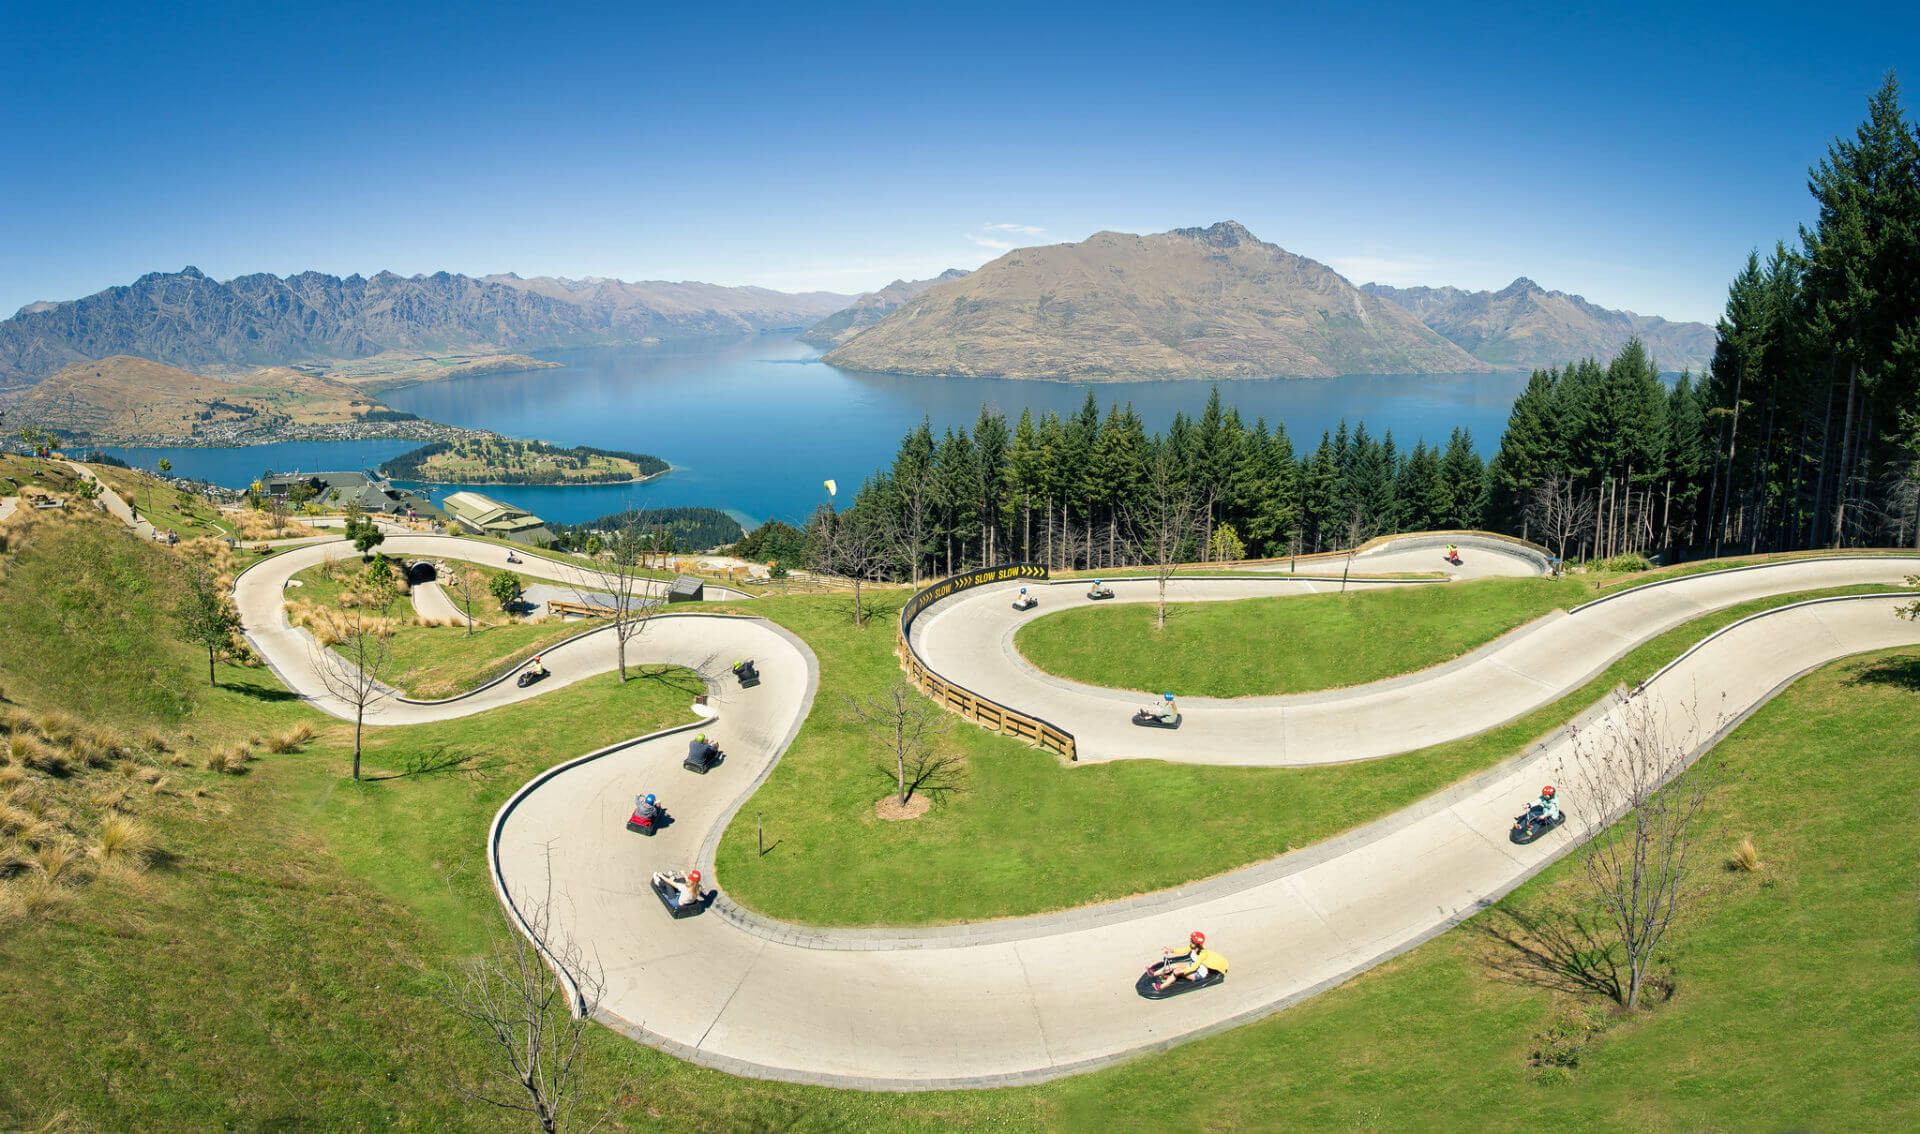 Luge Track and Views of Lake Wakatipu and the mountains behind.